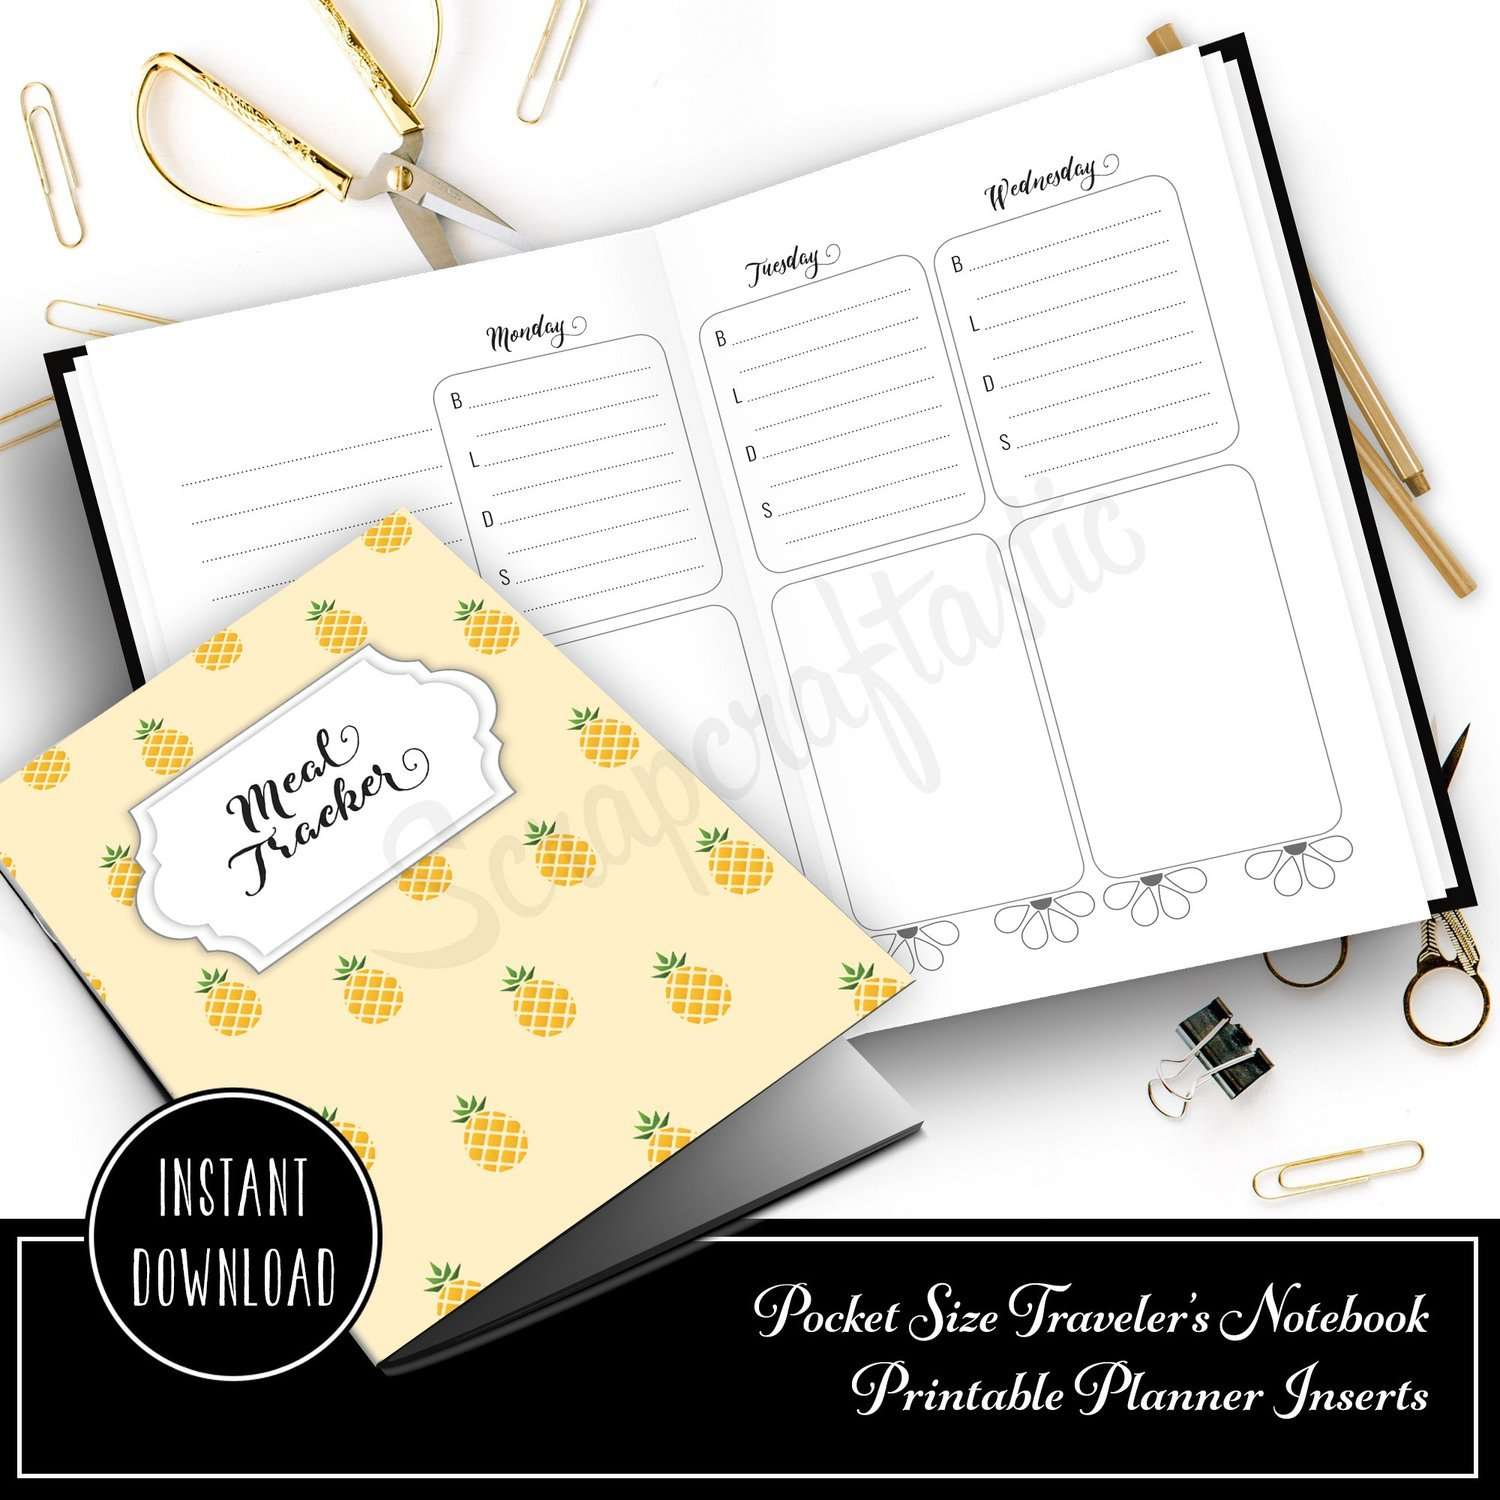 Meal Tracker Notebook:  Pocket Size Printable Traveler's Notebook with WO4P and Grocery Checklist with grid pages